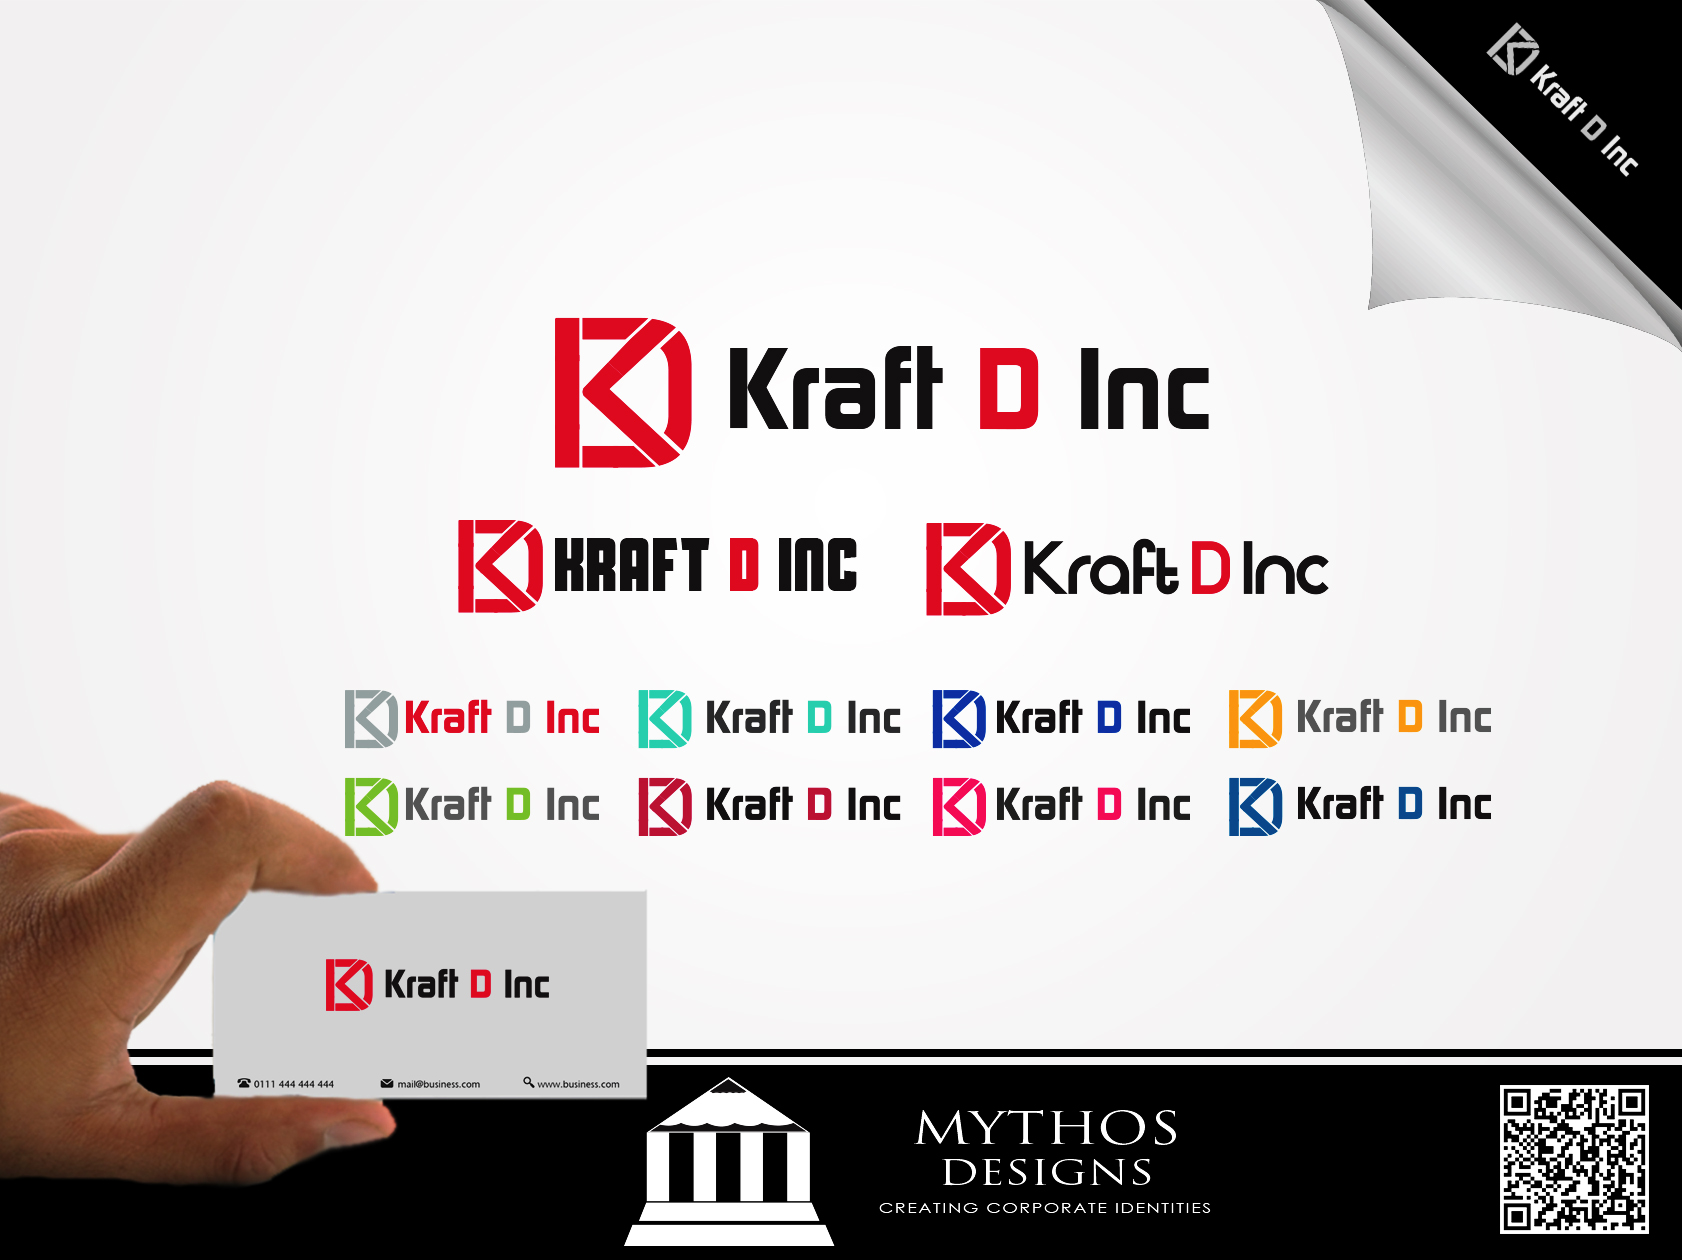 Logo Design by Mythos Designs - Entry No. 163 in the Logo Design Contest Unique Logo Design Wanted for Kraft D Inc.